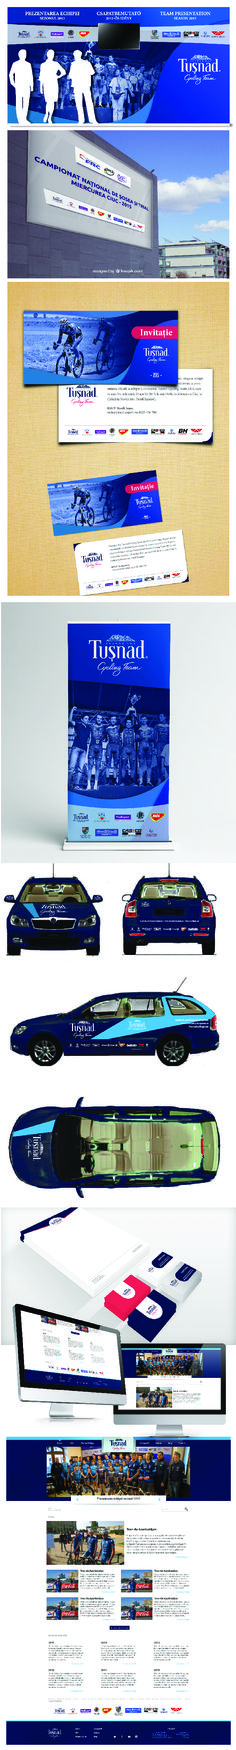 Jersey - Press wall - Outdoor banner - Invitation - Car sticker - Web design for Romania Continental Cycling Team